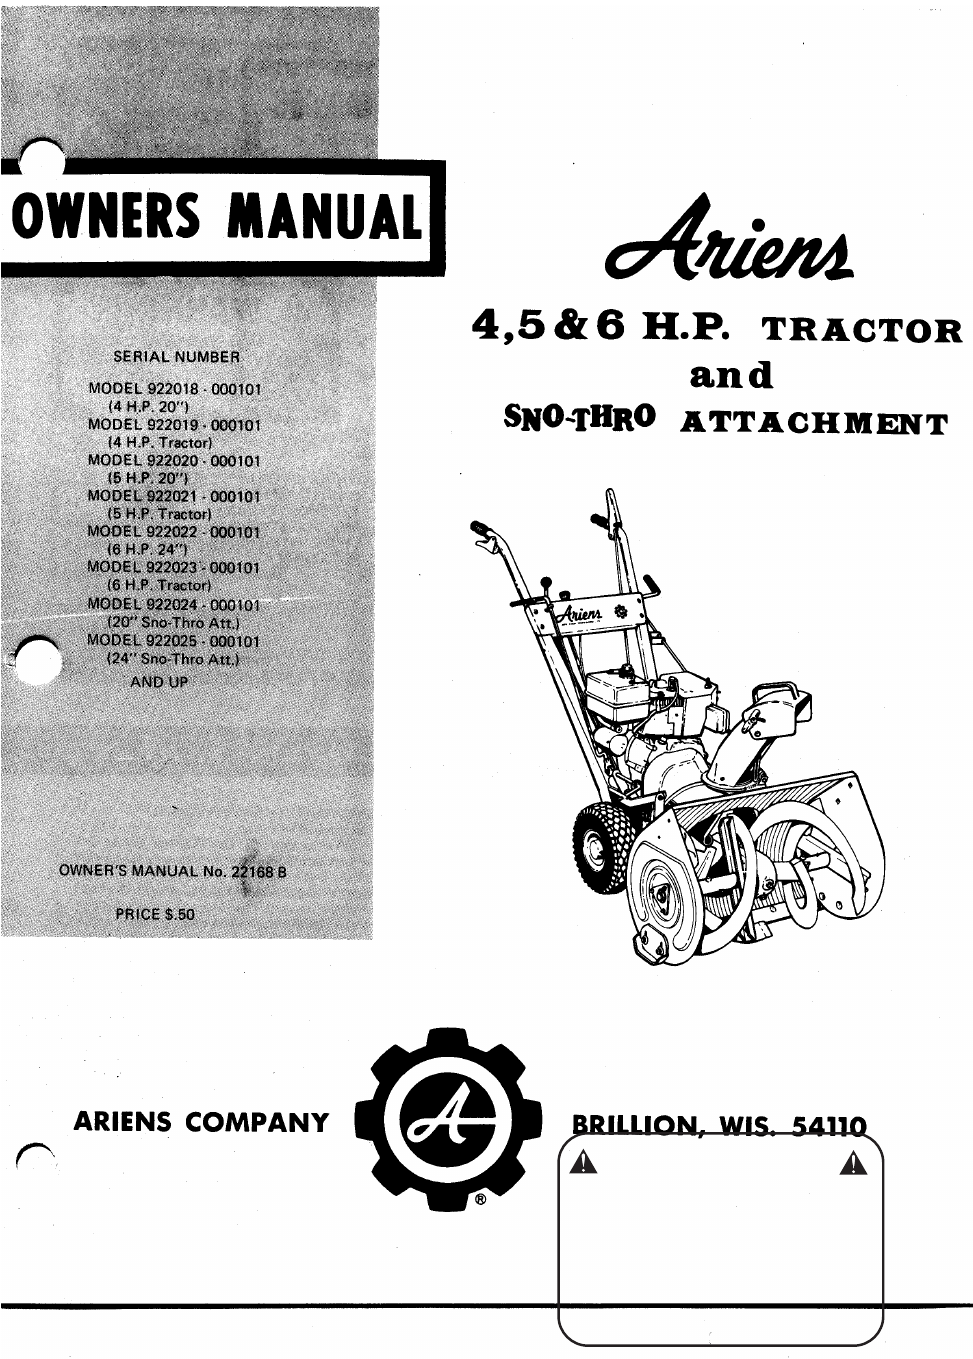 Ariens 961360006 Manual Engine Mount Diagram And Parts List For Murray Walkbehindlawnmower Array Free Rh Futuri Us